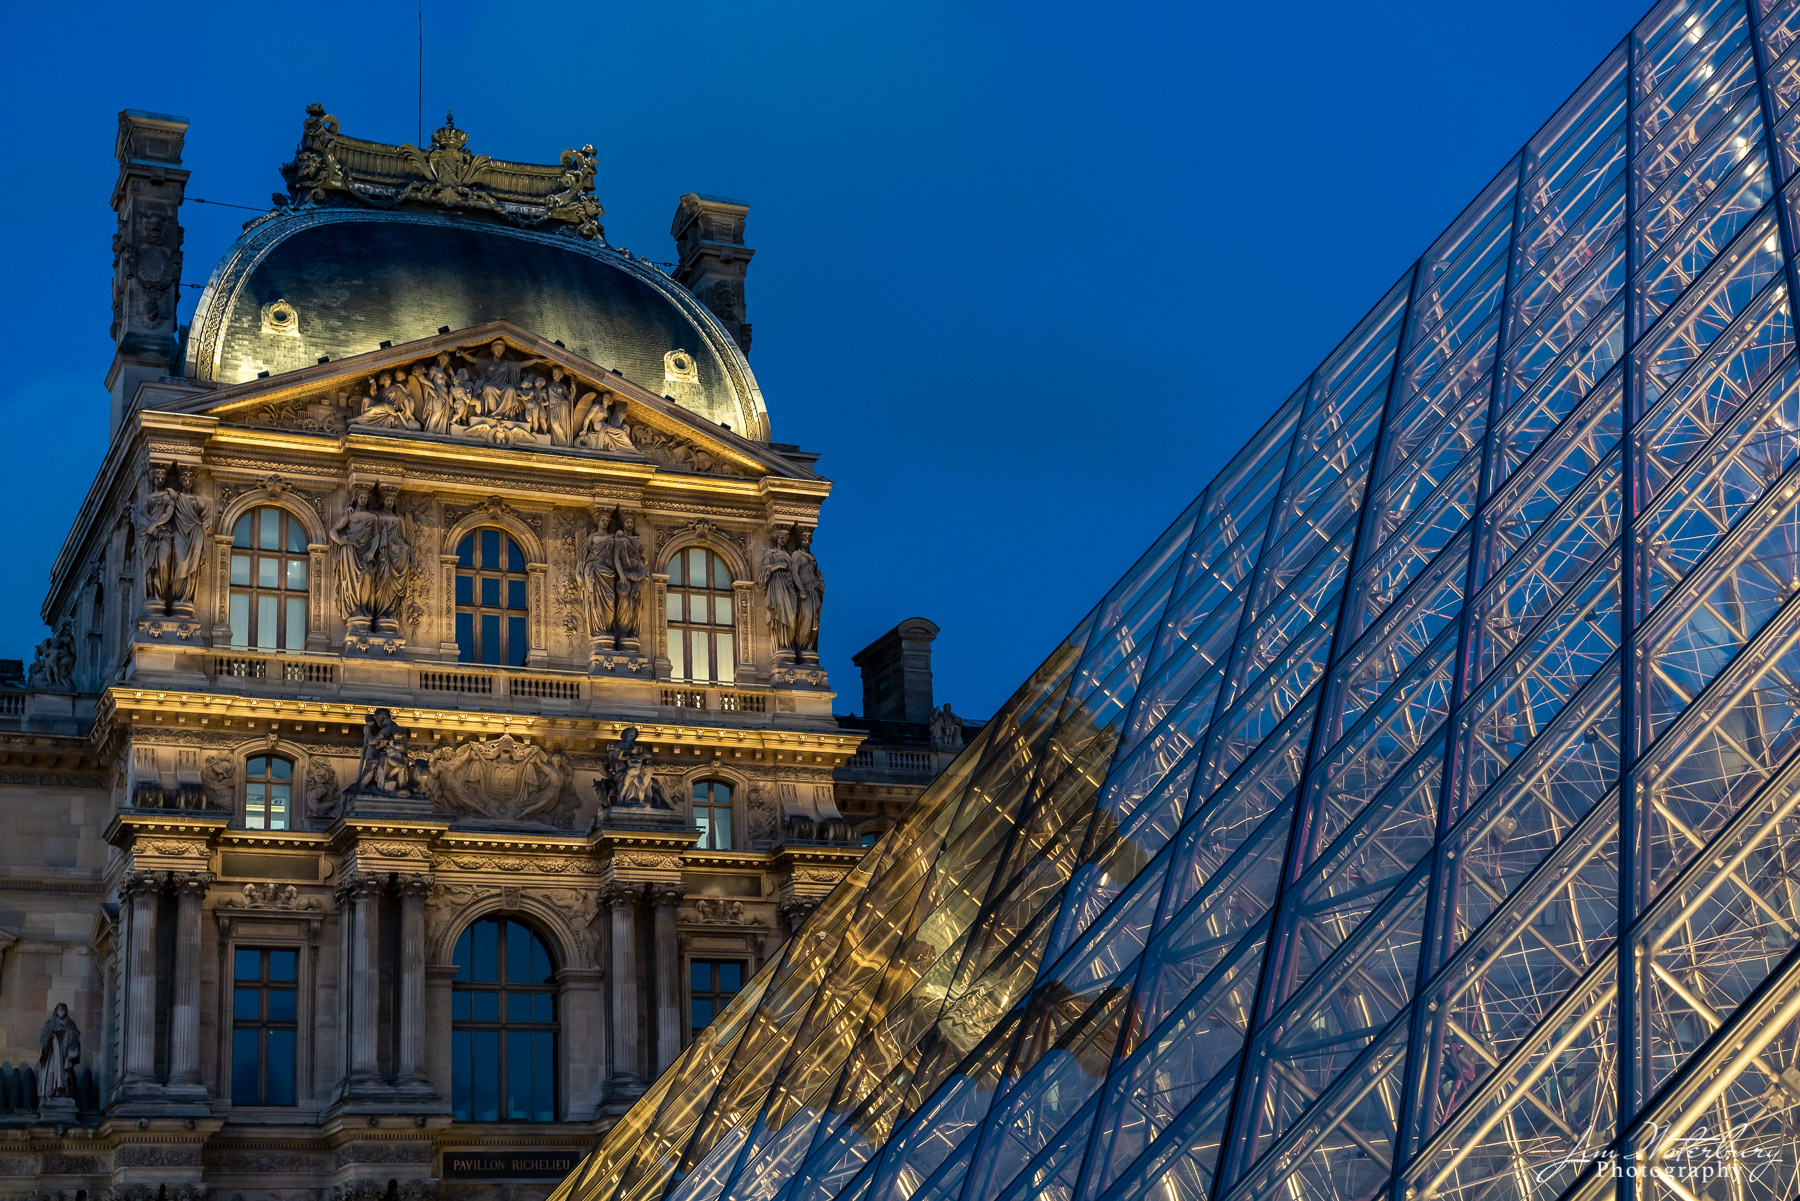 Photographed at night, this image contrasts the windows of the magnificent, baroque-style Palais du Louvre, originally built...